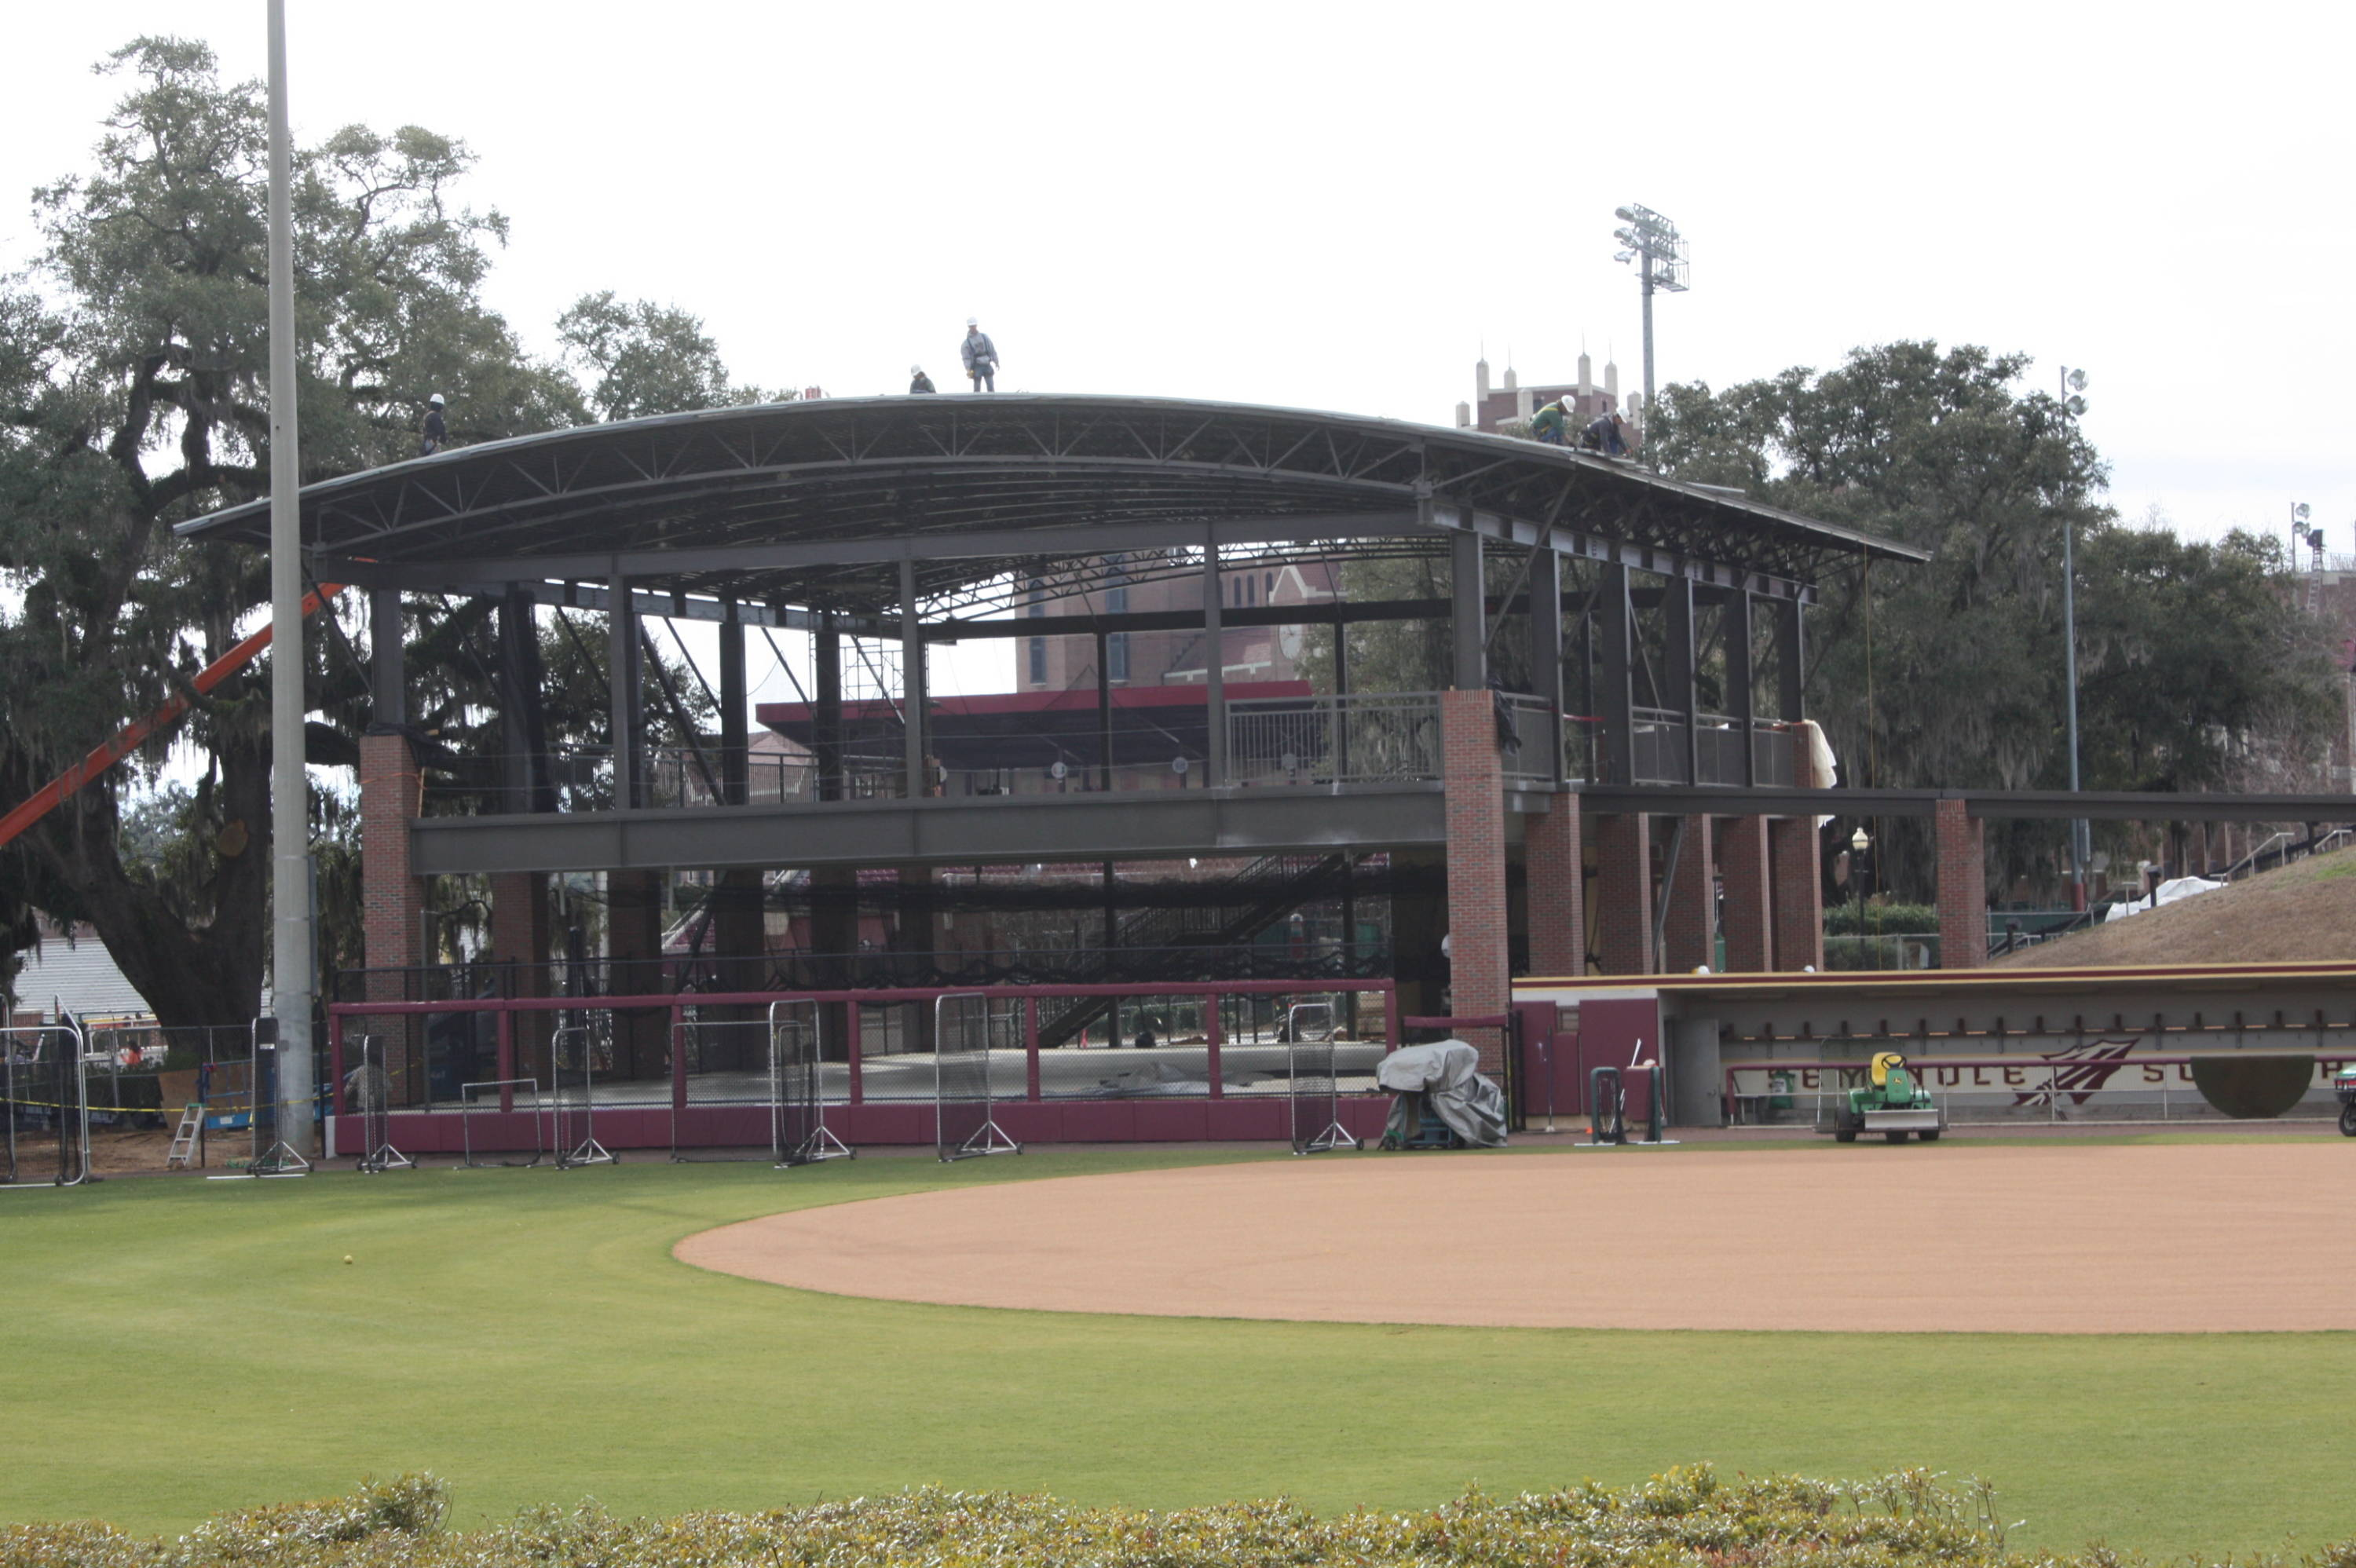 The indoor batting cage facility is now complete. Here is a picture of it near completion in early February